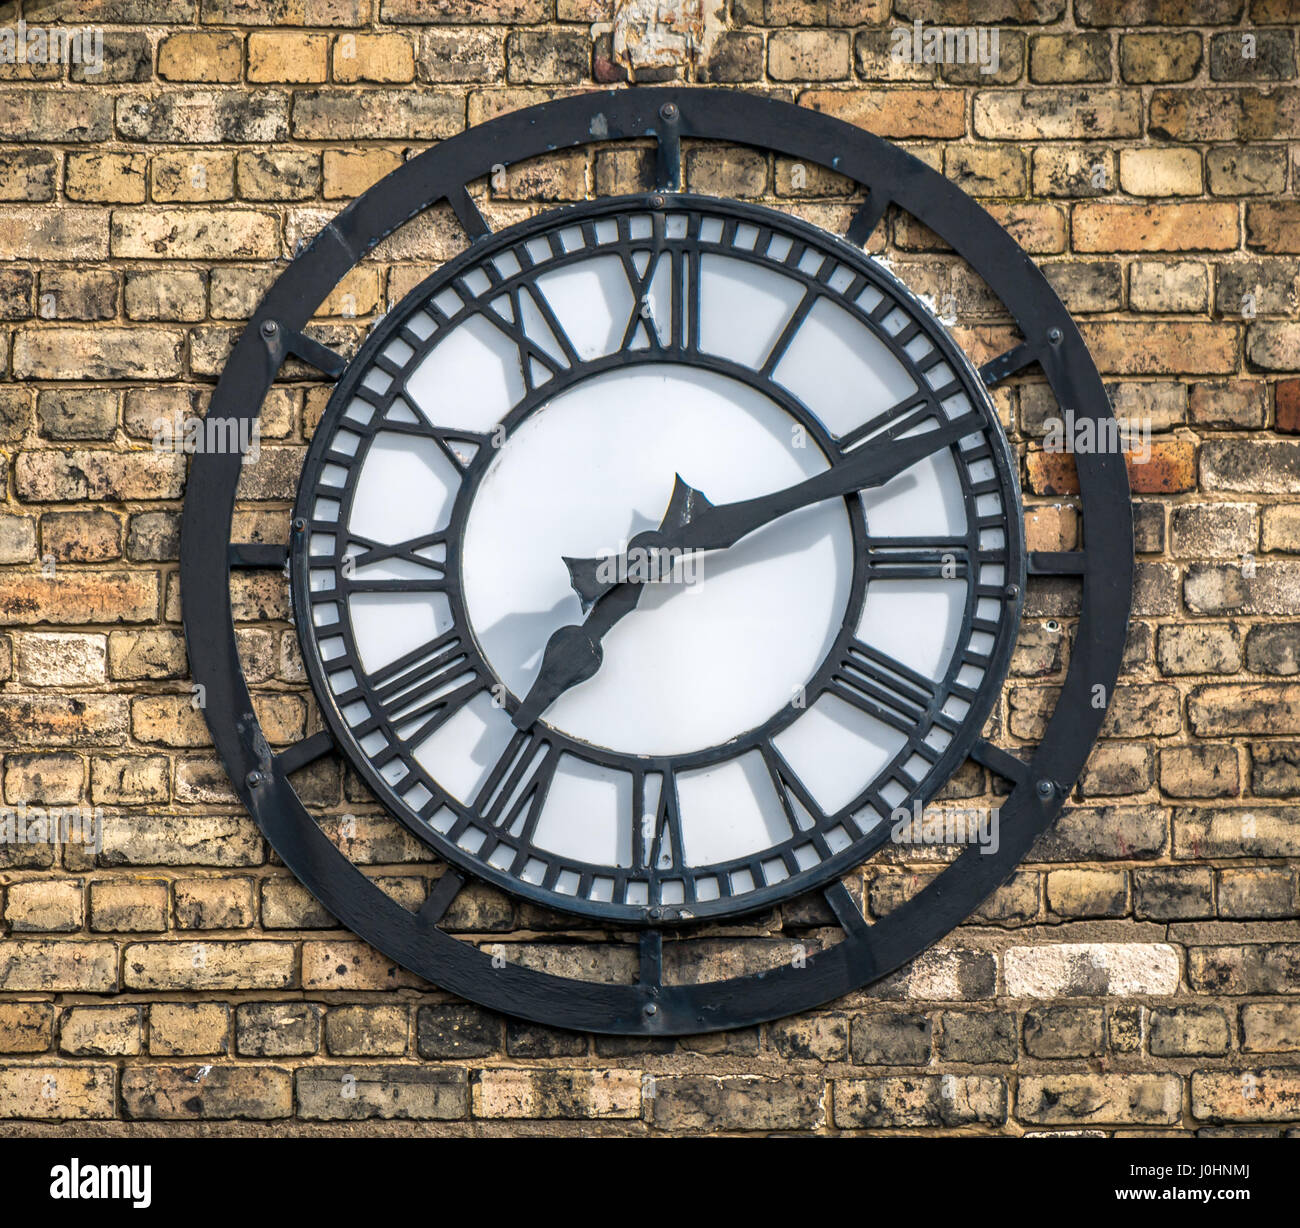 Zoomed view of large ornate Victorian clock, Leith Ports Office, Leith Docks, Edinburgh, Scotland, UK, showing 7.10 - Stock Image